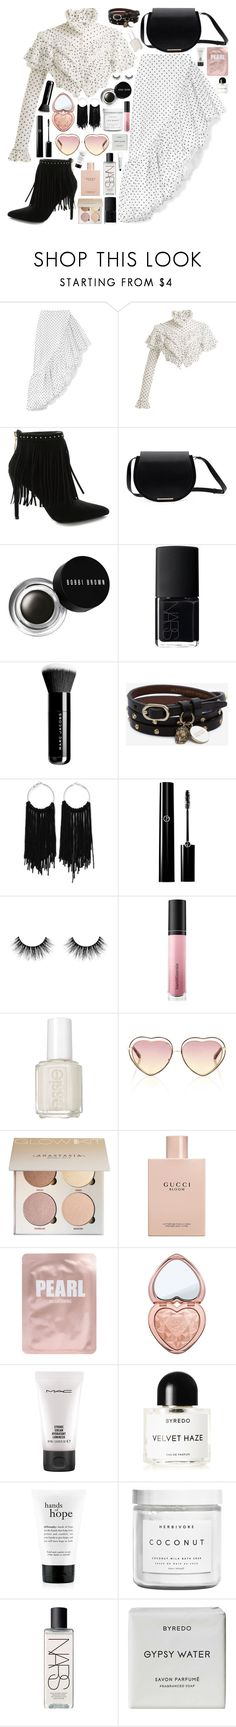 """Untitled #1129"" by douxlaur ❤ liked on Polyvore featuring Rodarte, Pierre Balmain, Bobbi Brown Cosmetics, NARS Cosmetics, Marc Jacobs, Alexander McQueen, Bare Escentuals, Essie, Chloé and Gucci"